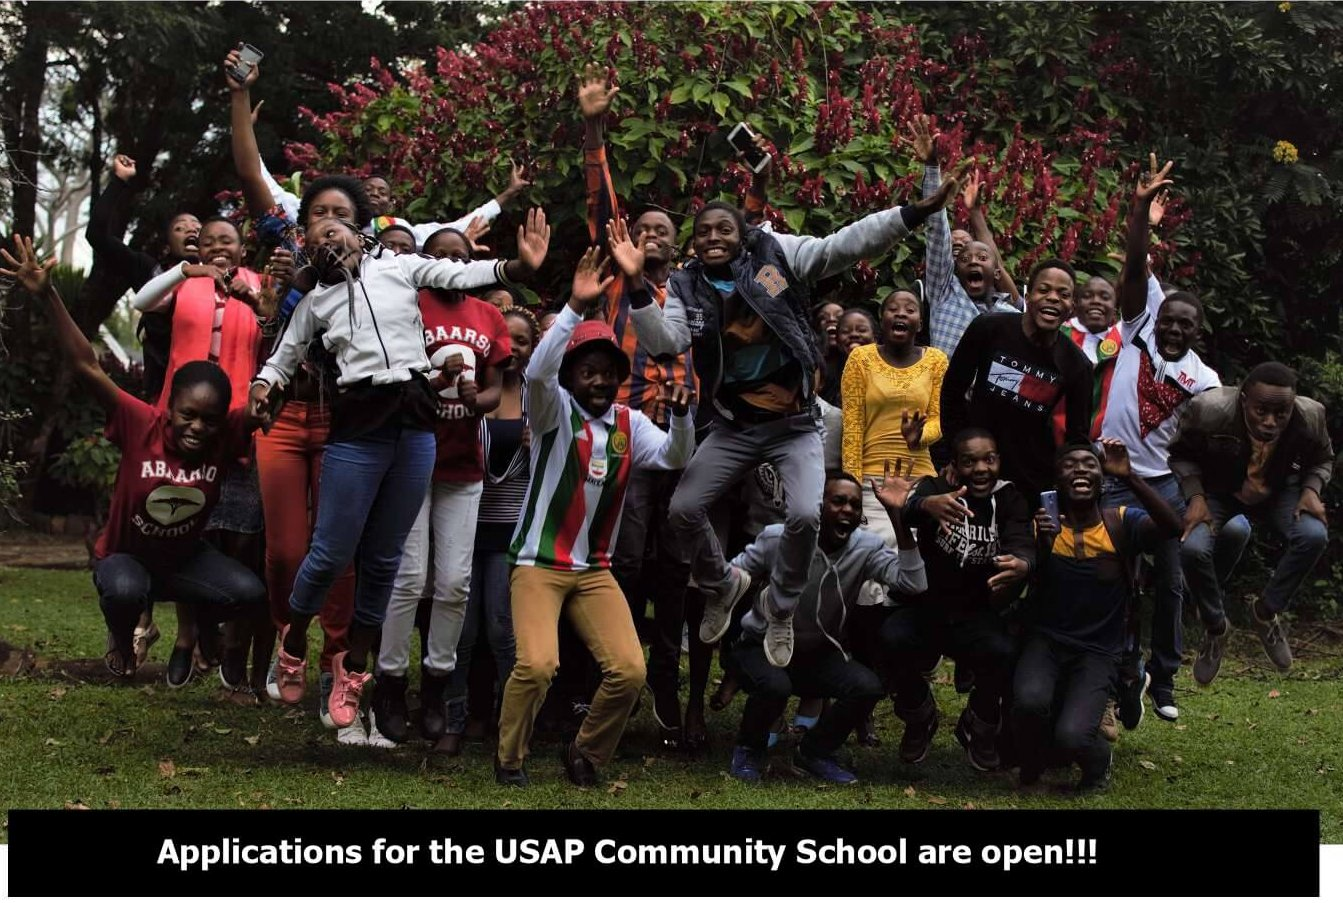 USAP Community School Applications Are Out!